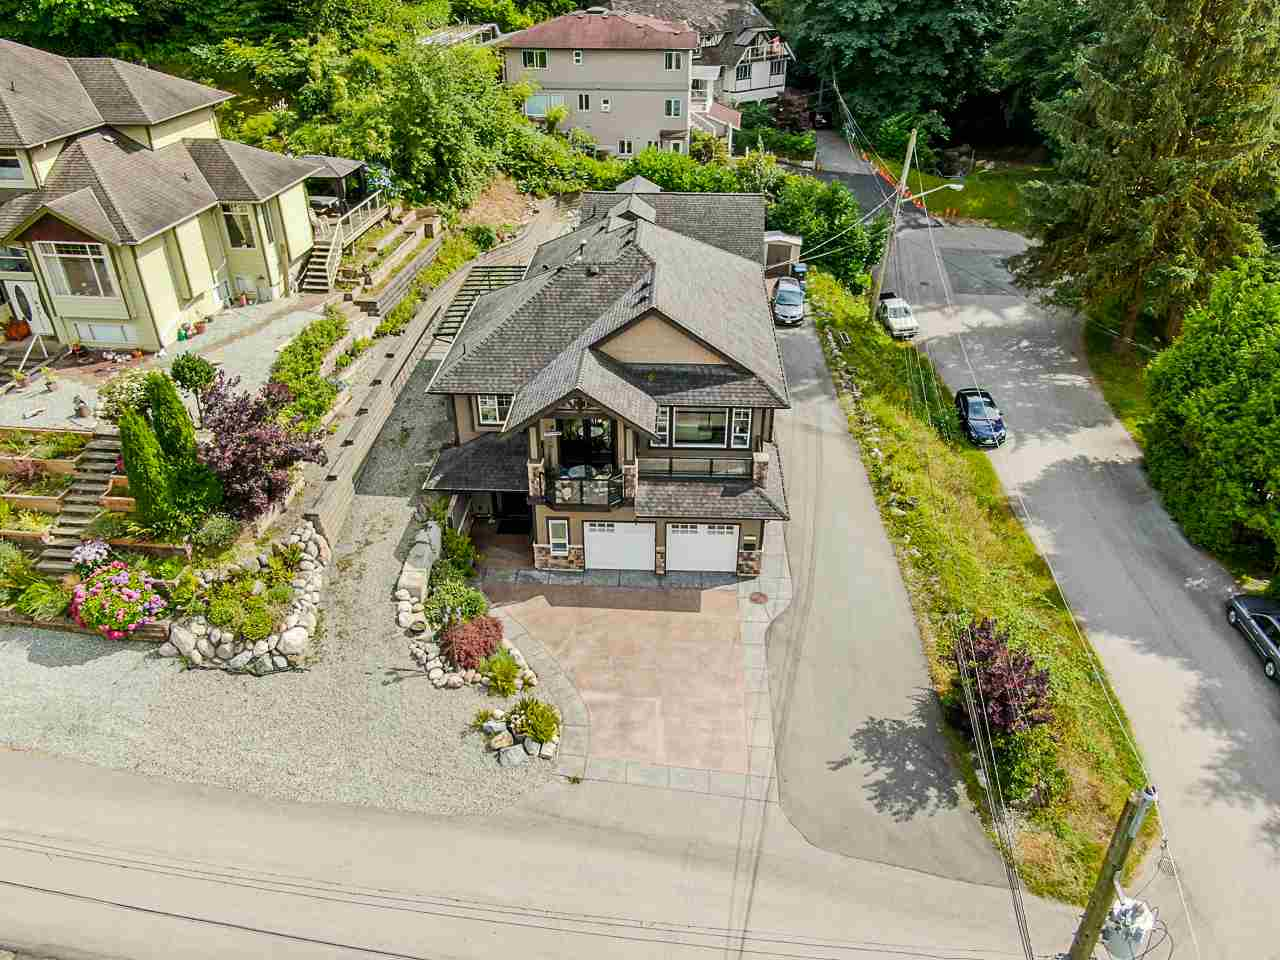 2801 IVY STREET - Port Moody Centre House/Single Family for sale, 5 Bedrooms (R2481875) - #29